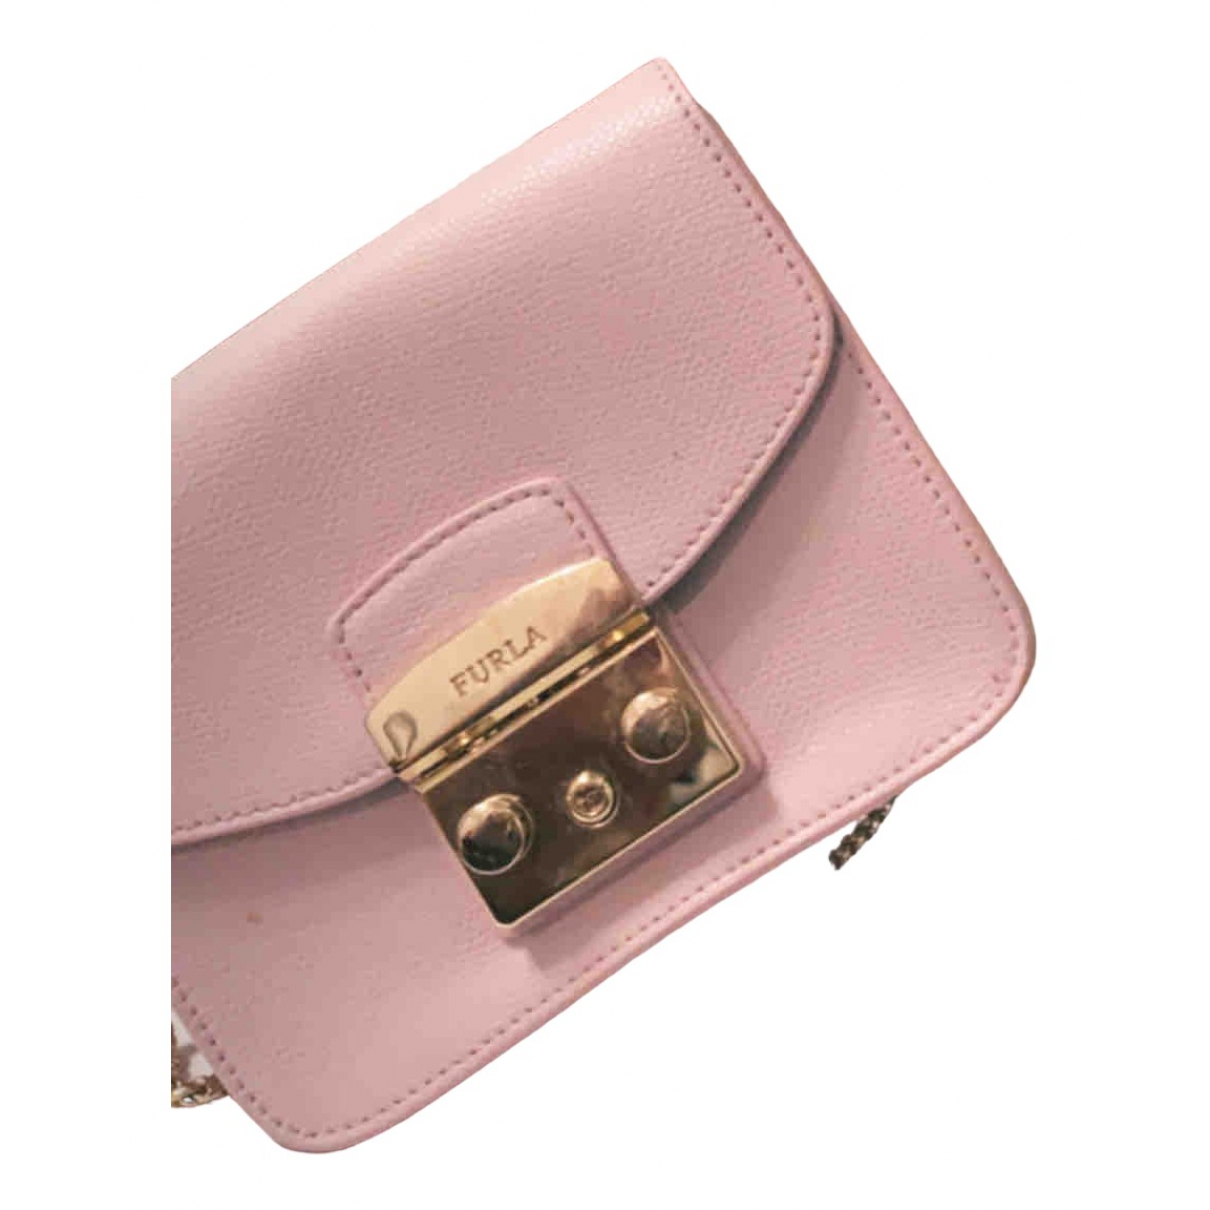 Furla Candy Bag Pink Patent leather handbag for Women N